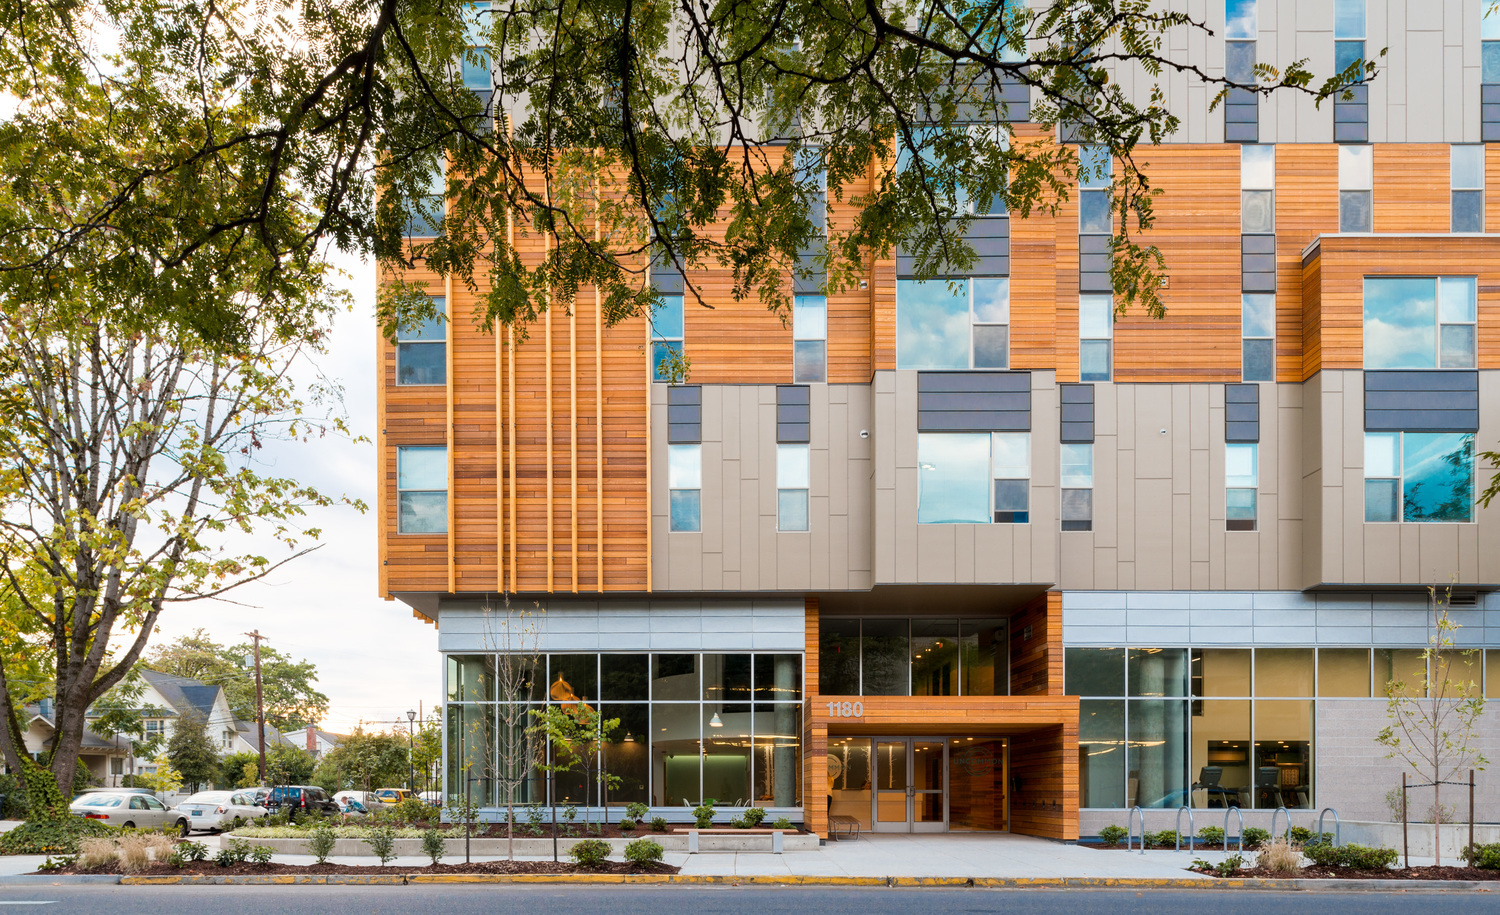 Student Housing project The Soto in Eugene, Oregon